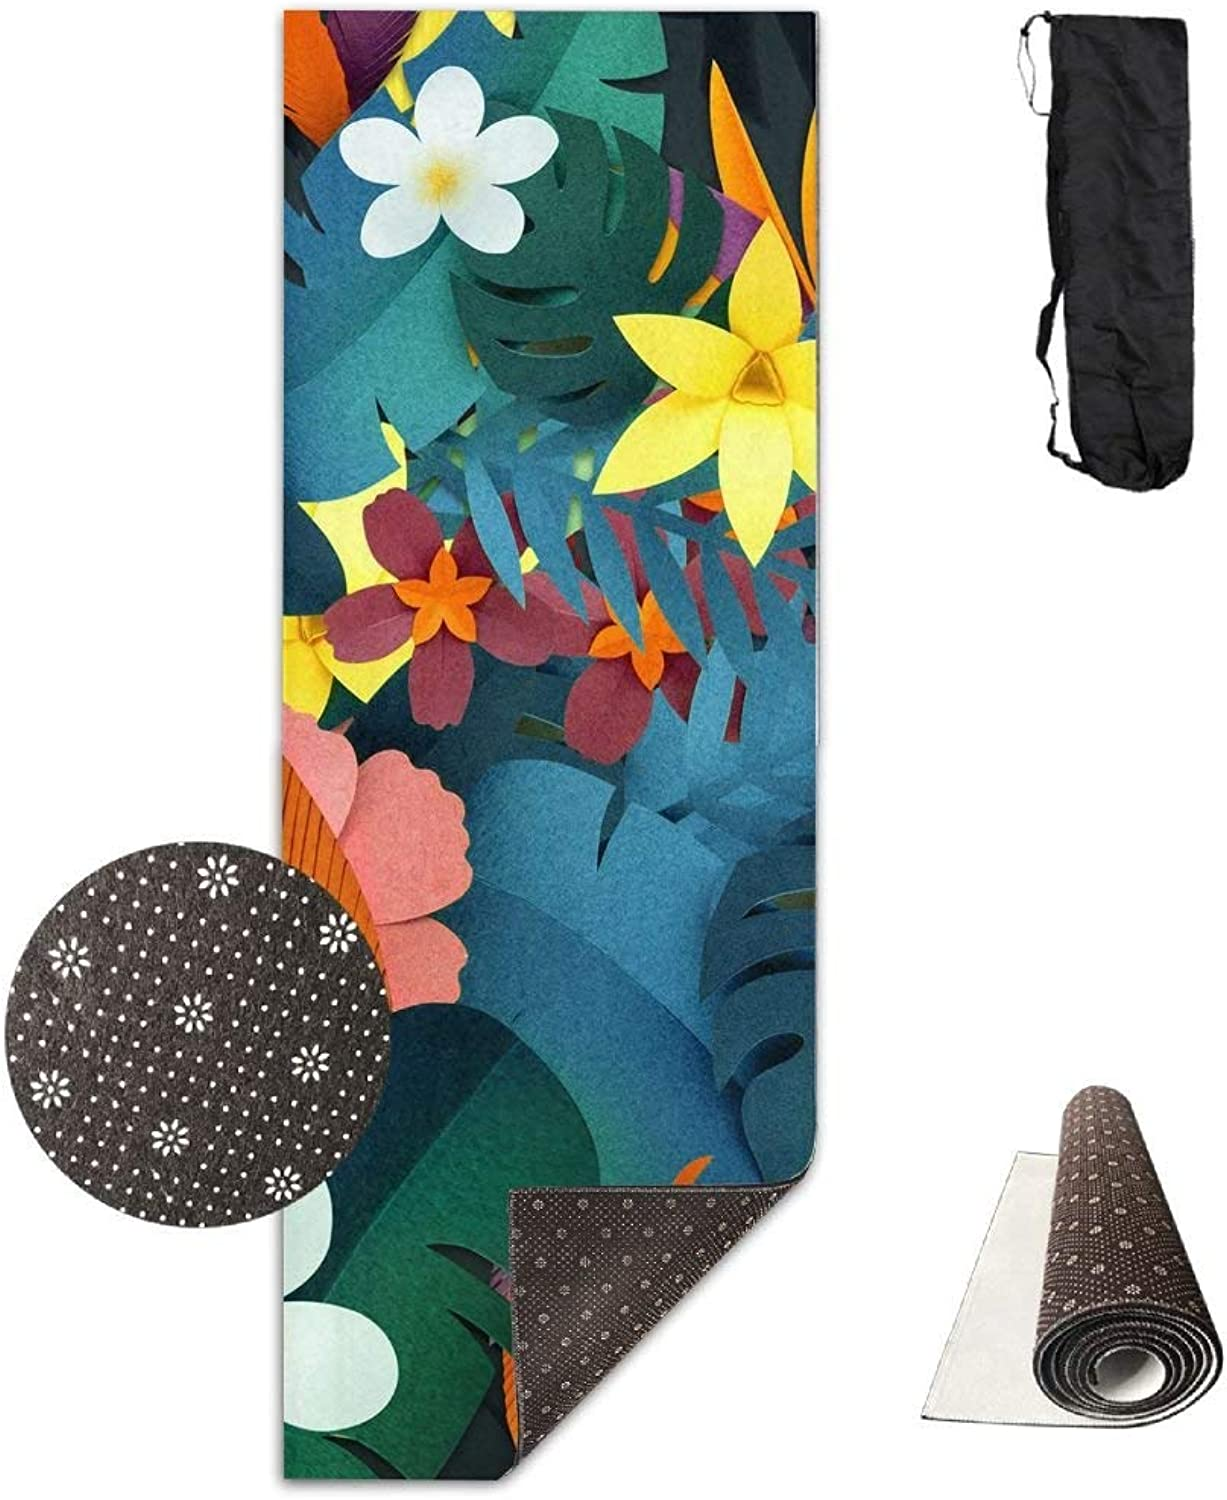 Brightly colord Flowers Yoga Mat 72X24 Inch Premium Print NonSlip EcoFriendly AntiTear Floor Pilates Exercise Mat for Yoga, Workout, Fitness with Carrying Strap